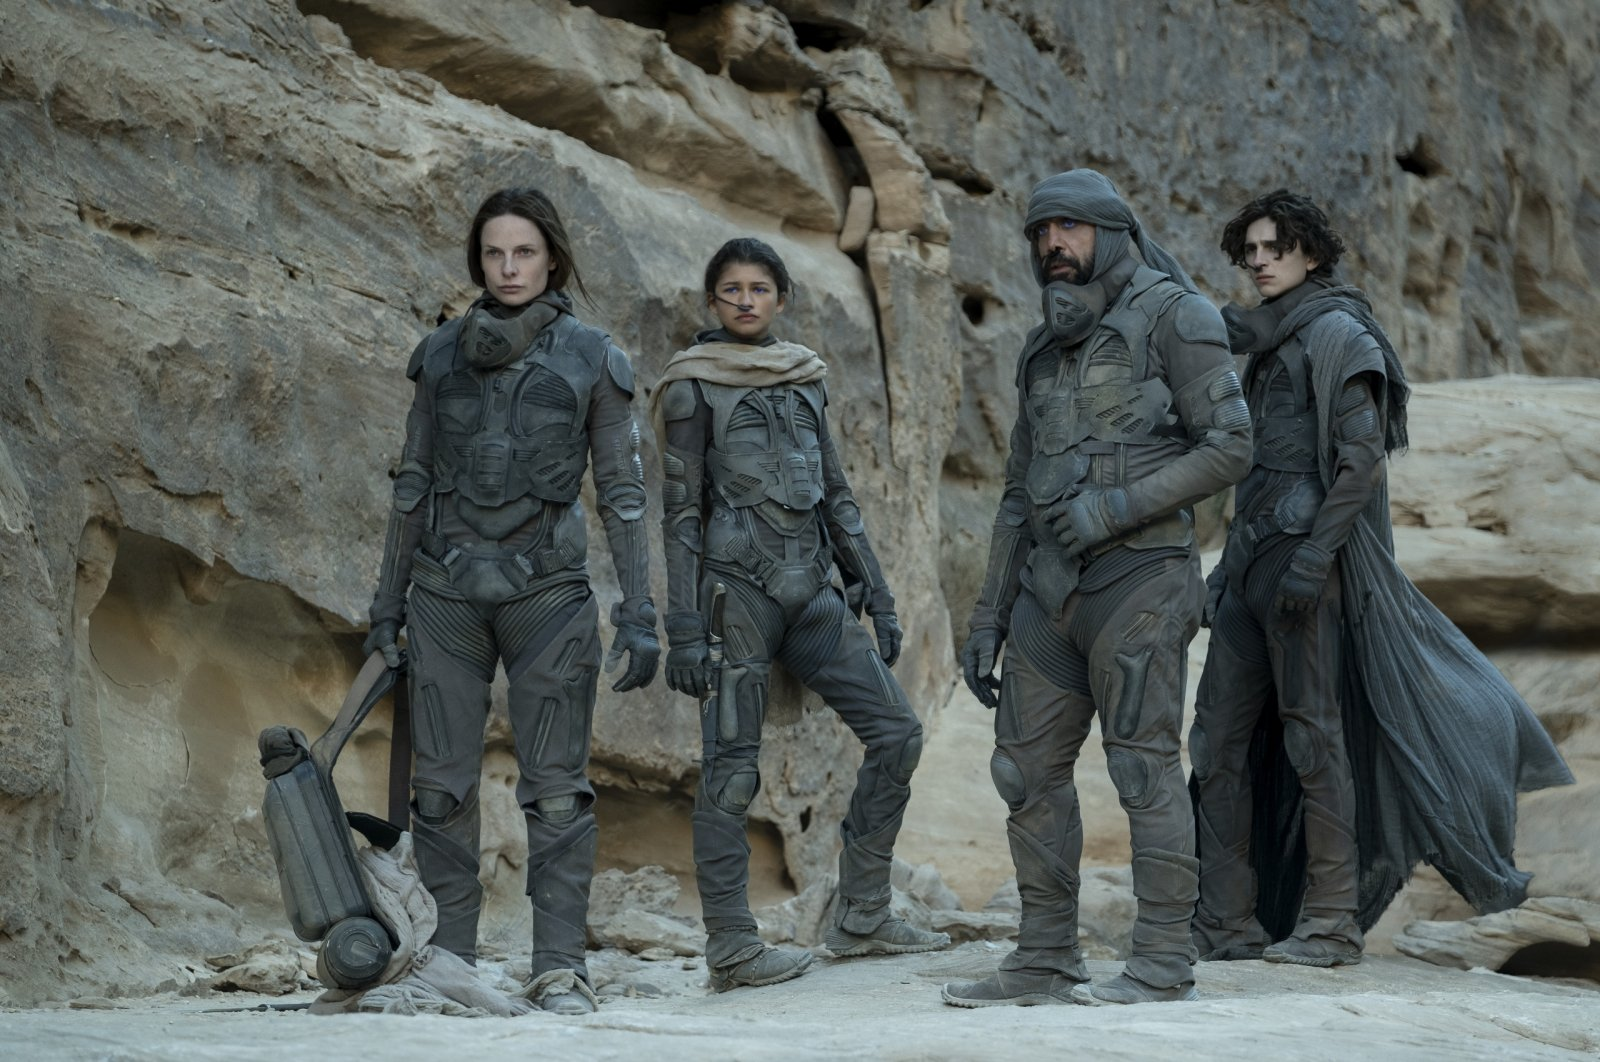 """From left to right, Rebecca Furguson as Lady Jessica Atreides, Zendaya as Chani, Javier Bardem as Stilgar and Timothee Chalamet as Paul Atreides in a scene of the film """"Dune."""" (dpa Photo)"""